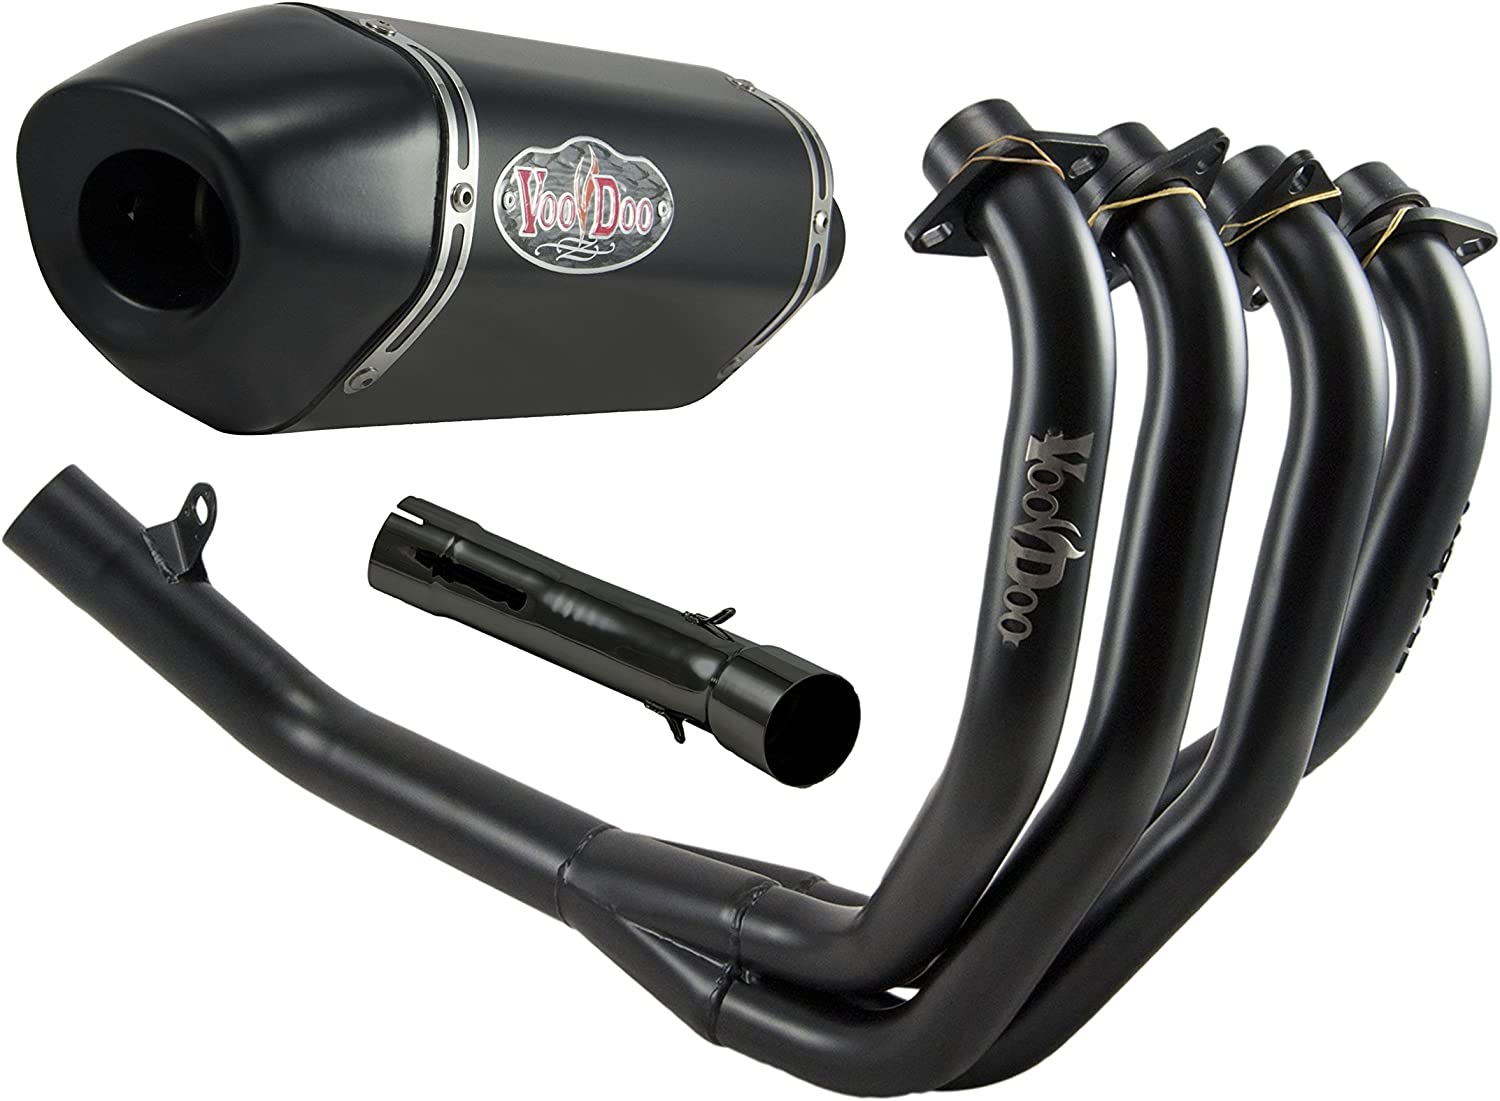 VooDoo Industries VEFSCBR900J3B Black Finish Shorty Exhaust//Muffler 4 Into 1 Full System for Canam CBR900RR